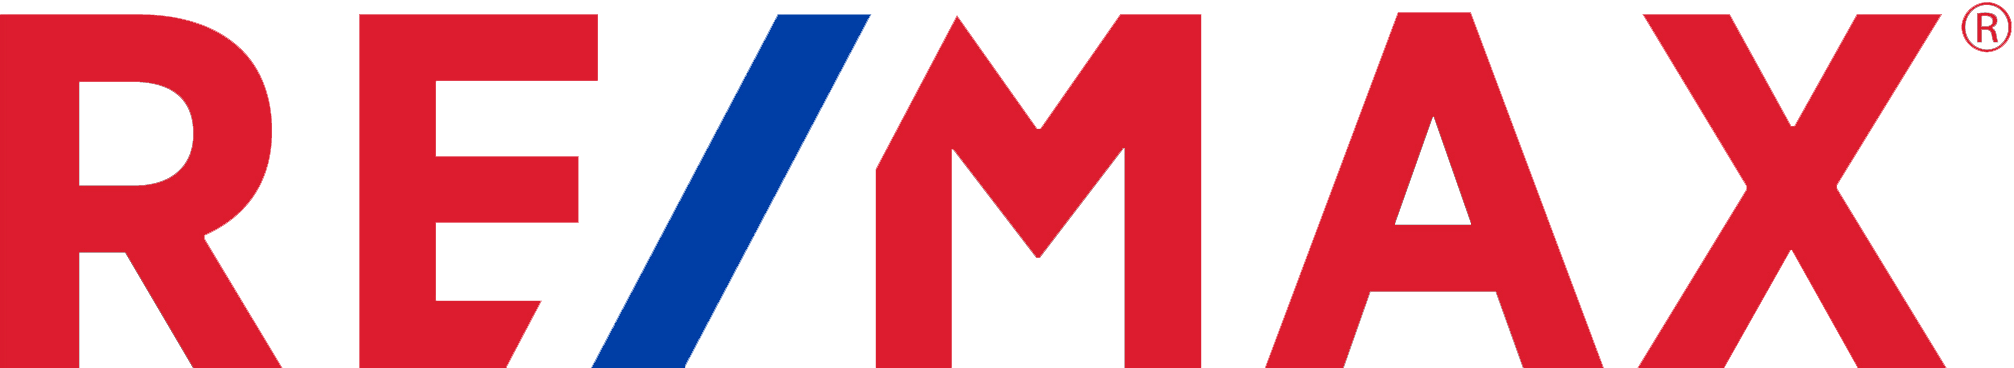 REMAX word logo